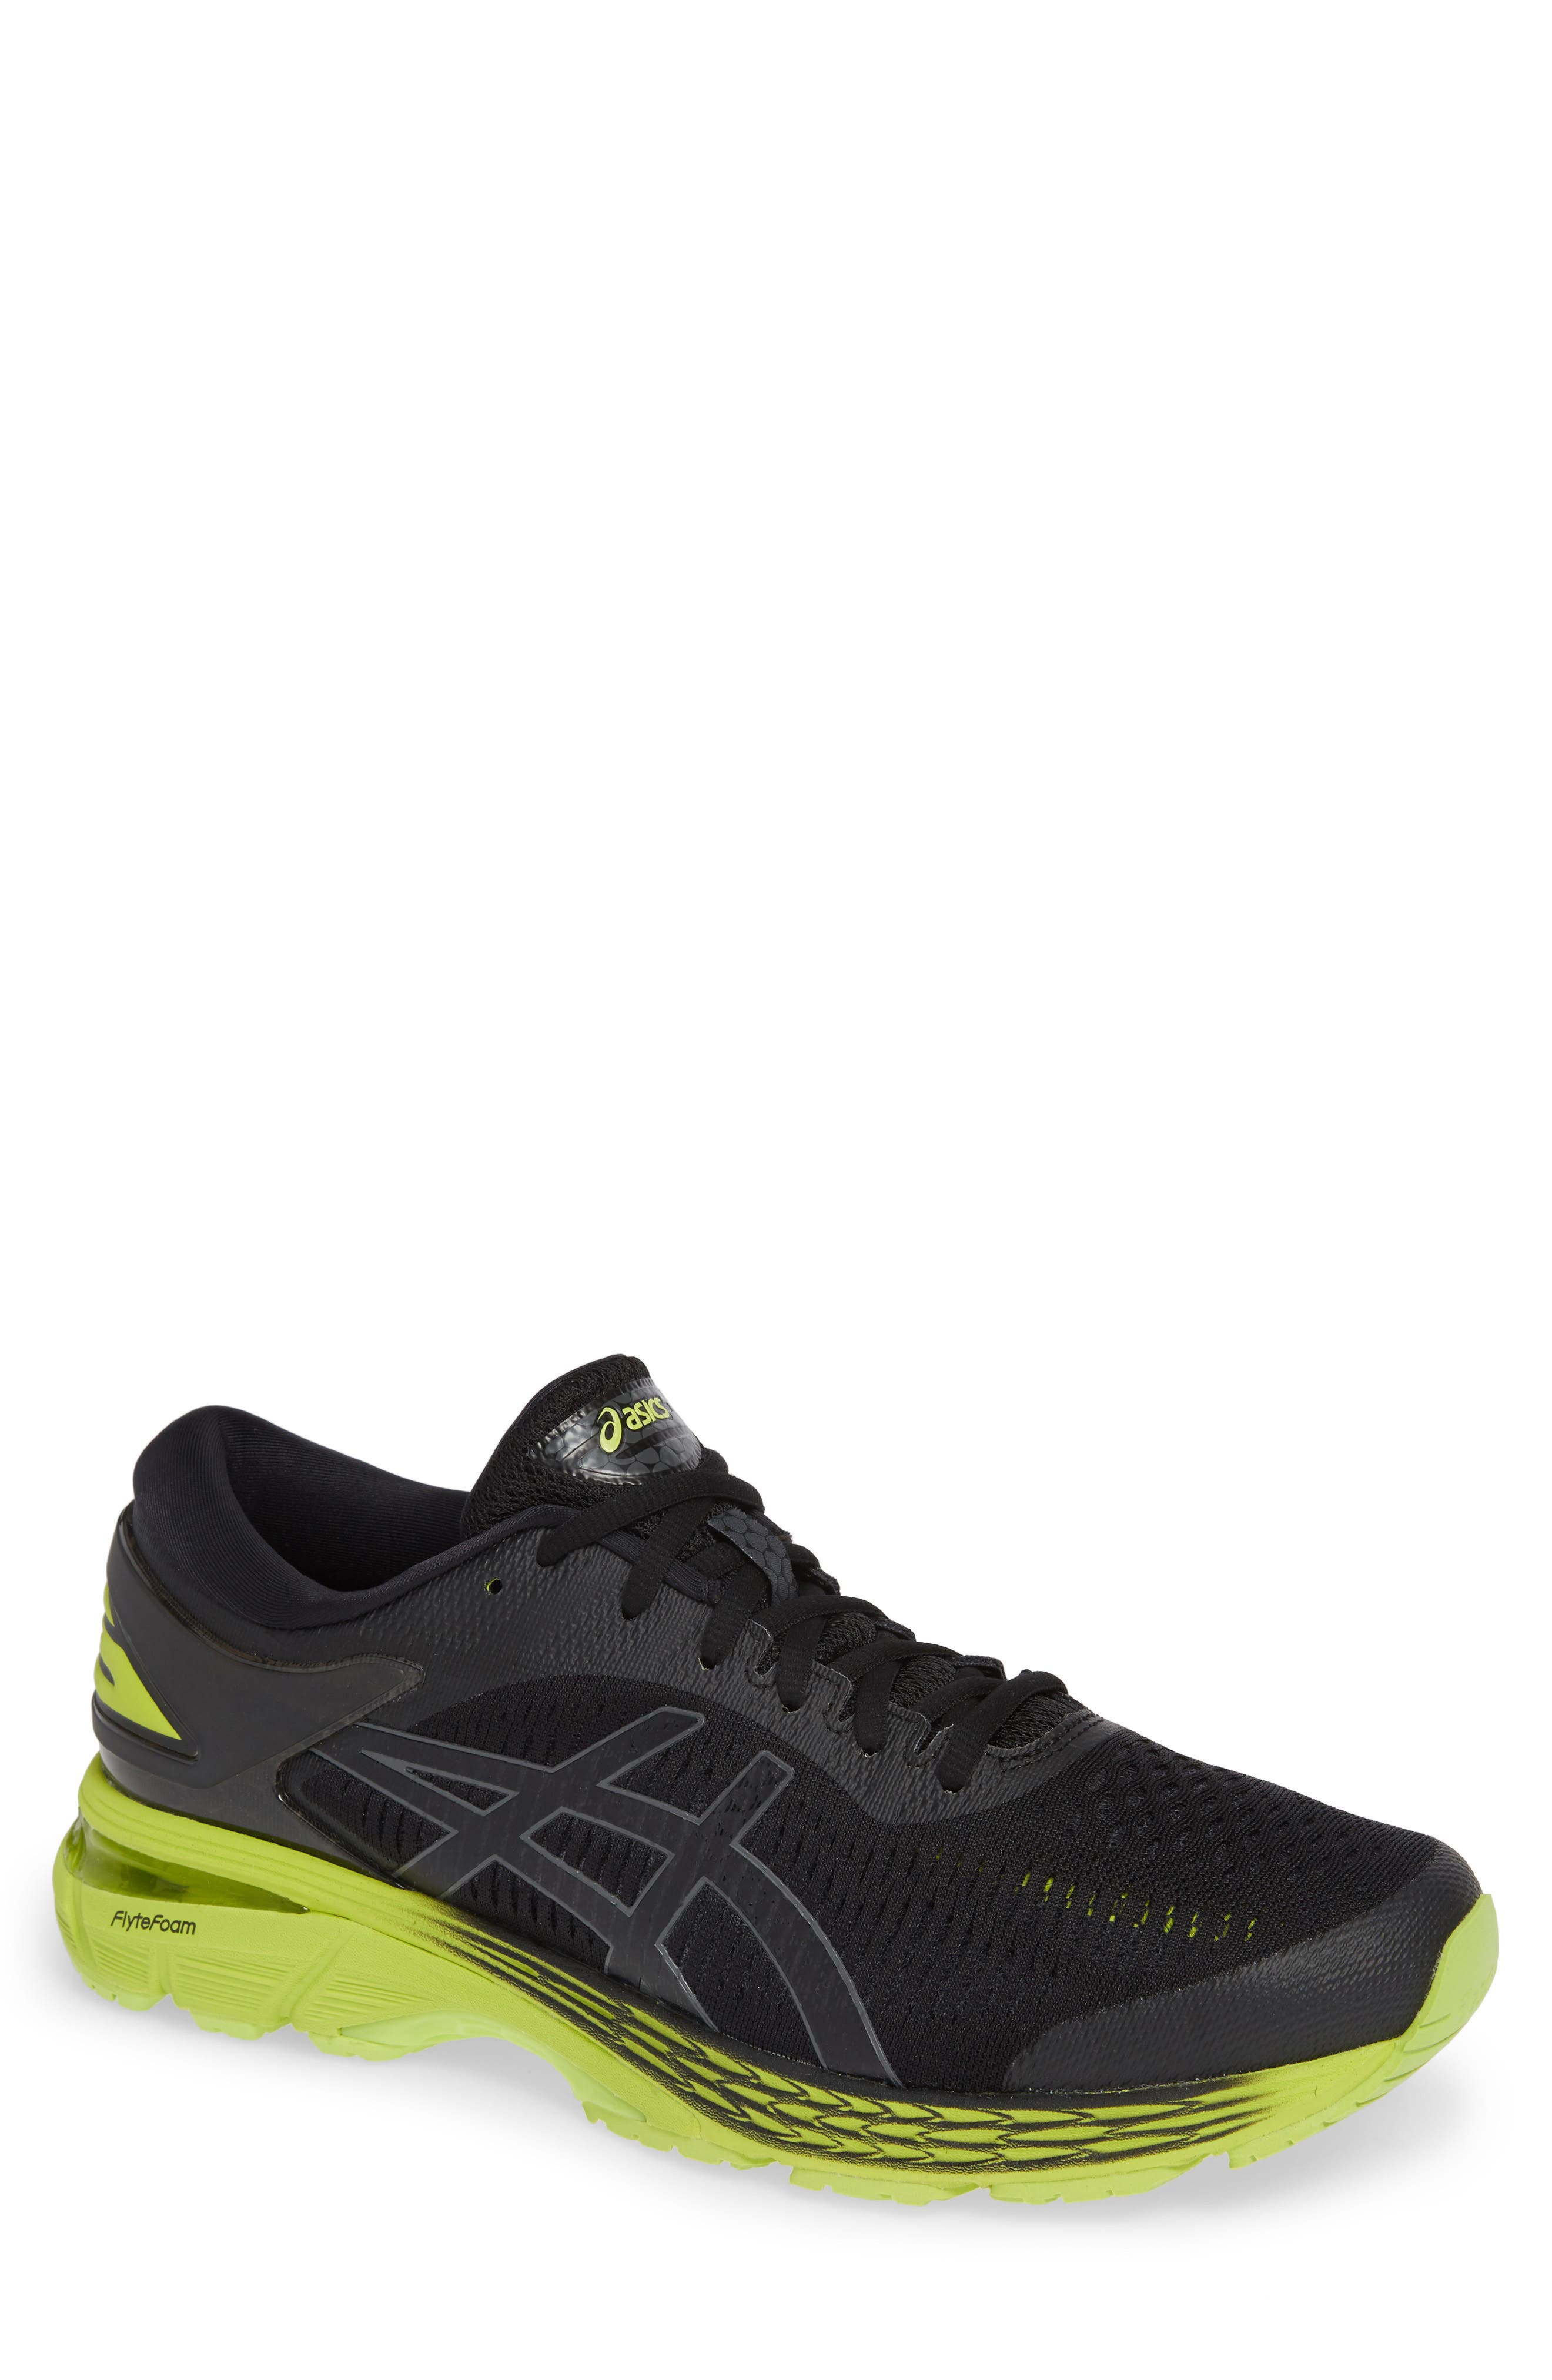 GEL-Kayano<sup>®</sup> 25 Running Shoe,                         Main,                         color, BLACK/ NEON LIME